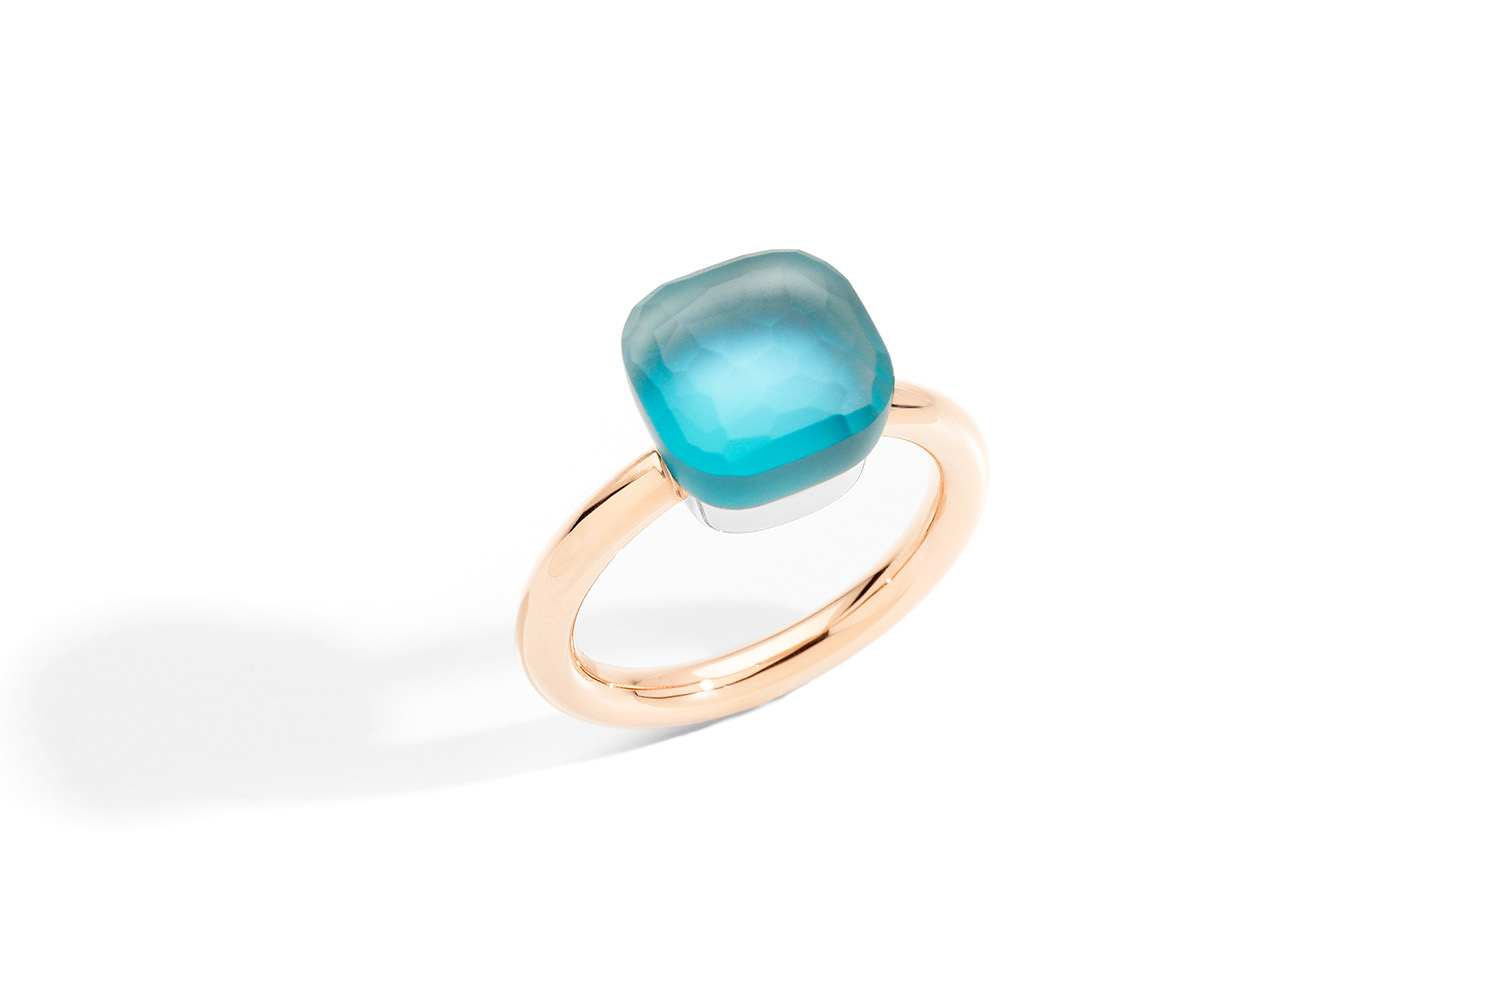 NUDO-GELE-Ring-in-rose-gold-with-blue-topaz-mother-of-pearl-turquoise-by-Pomellato